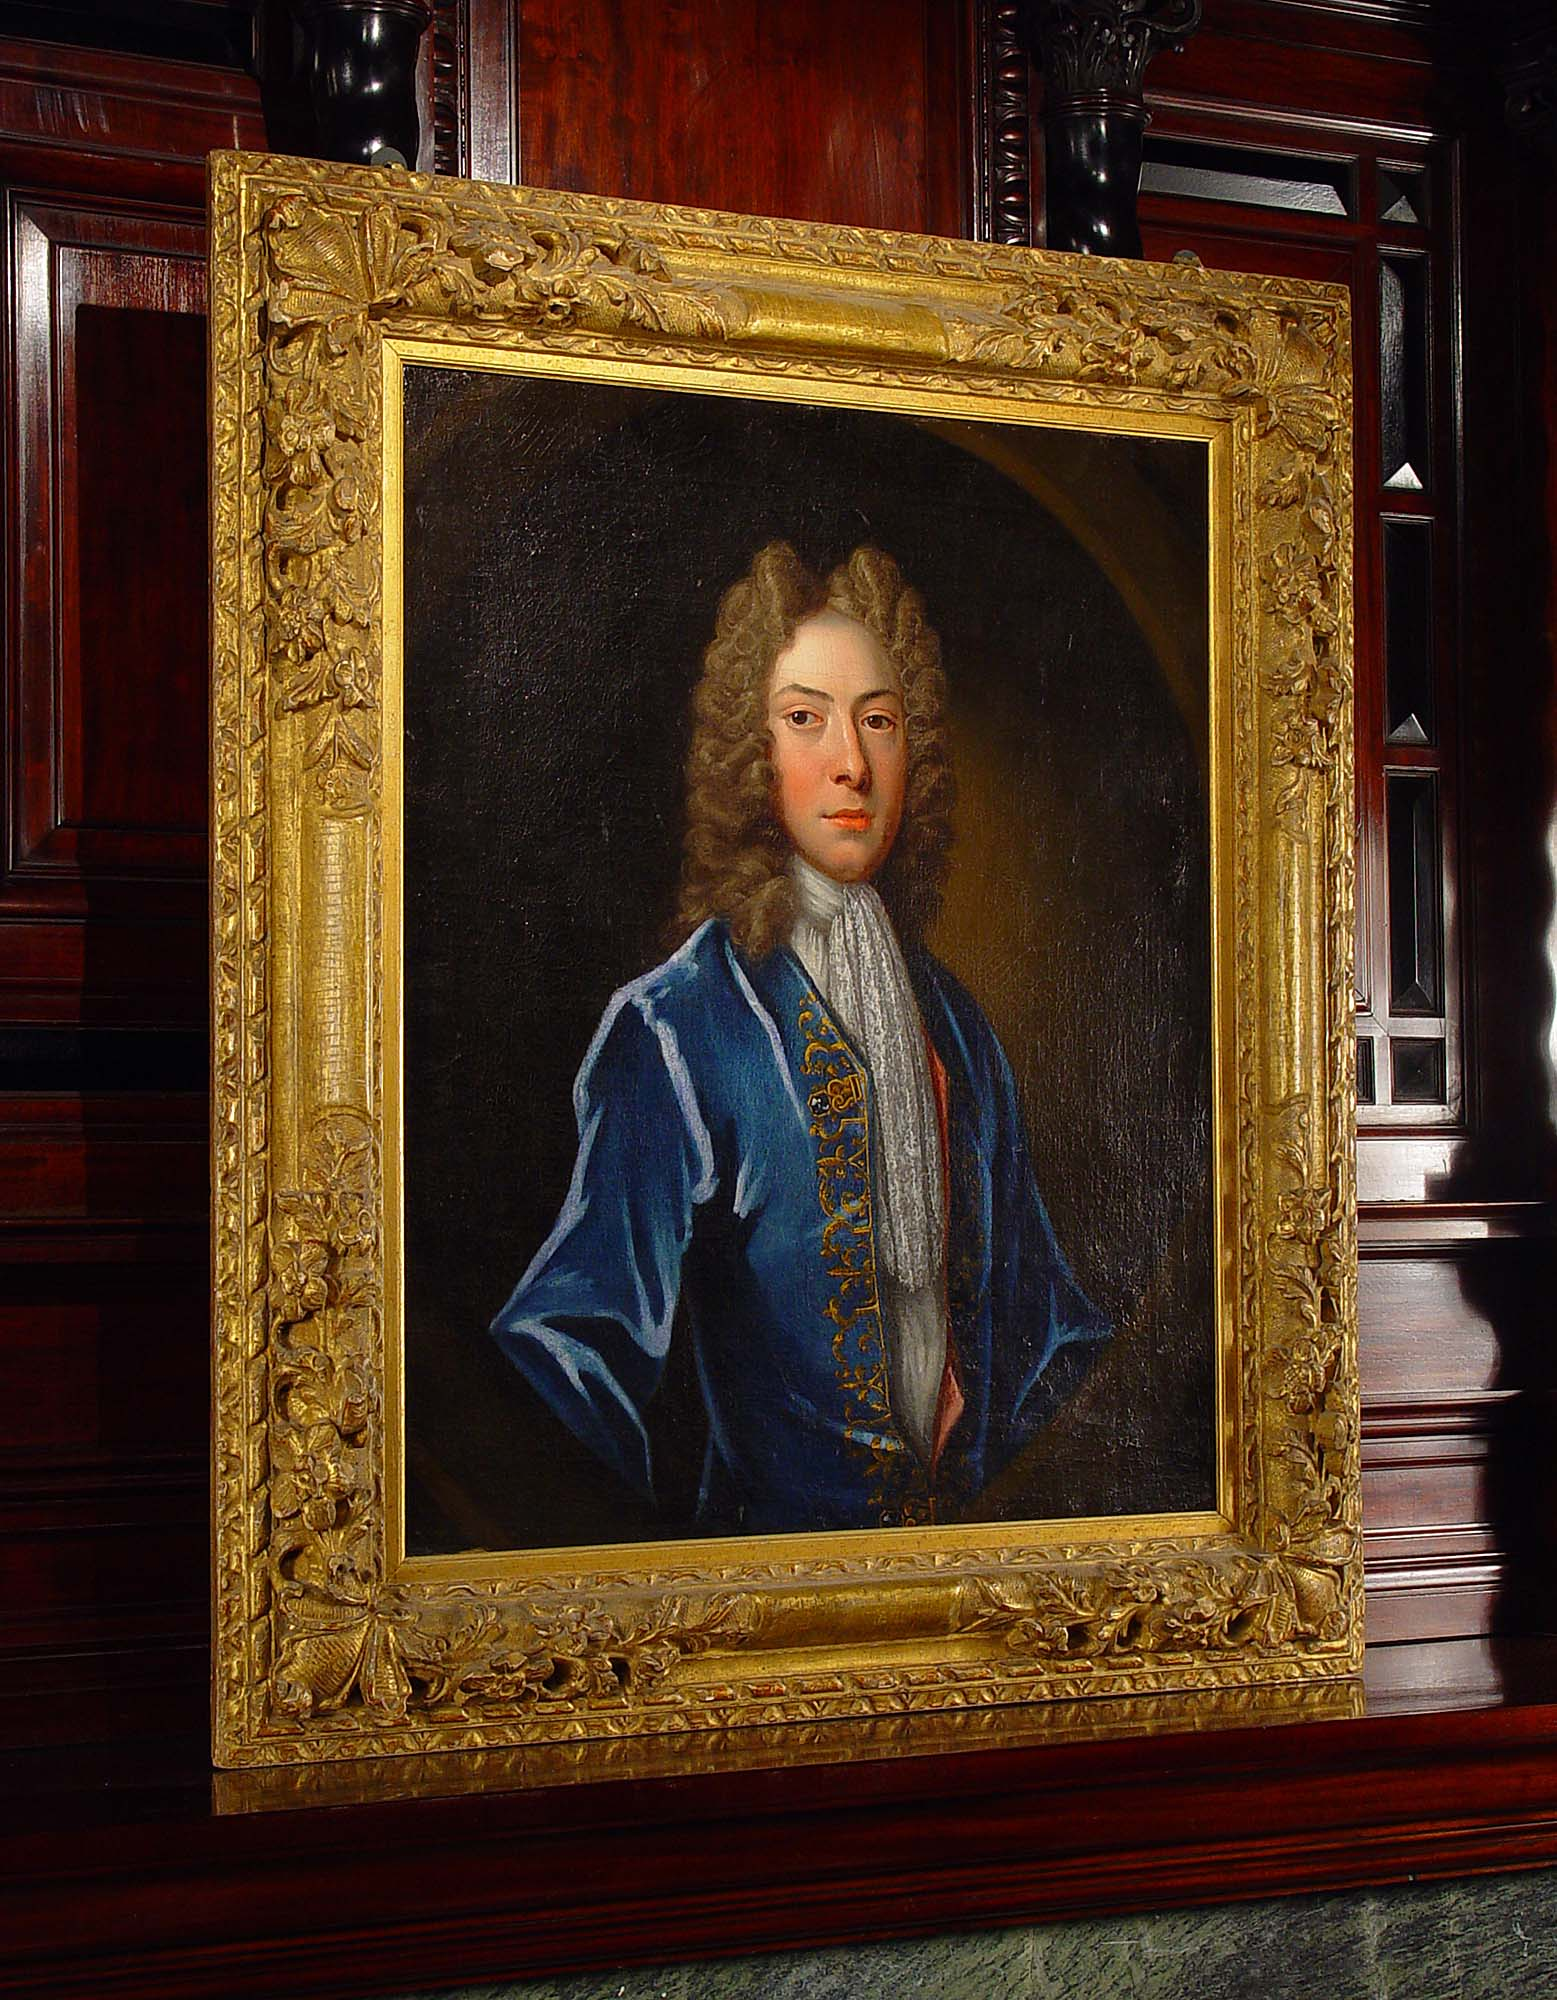 An Antique 17th early 18th century portrait oil on canvas